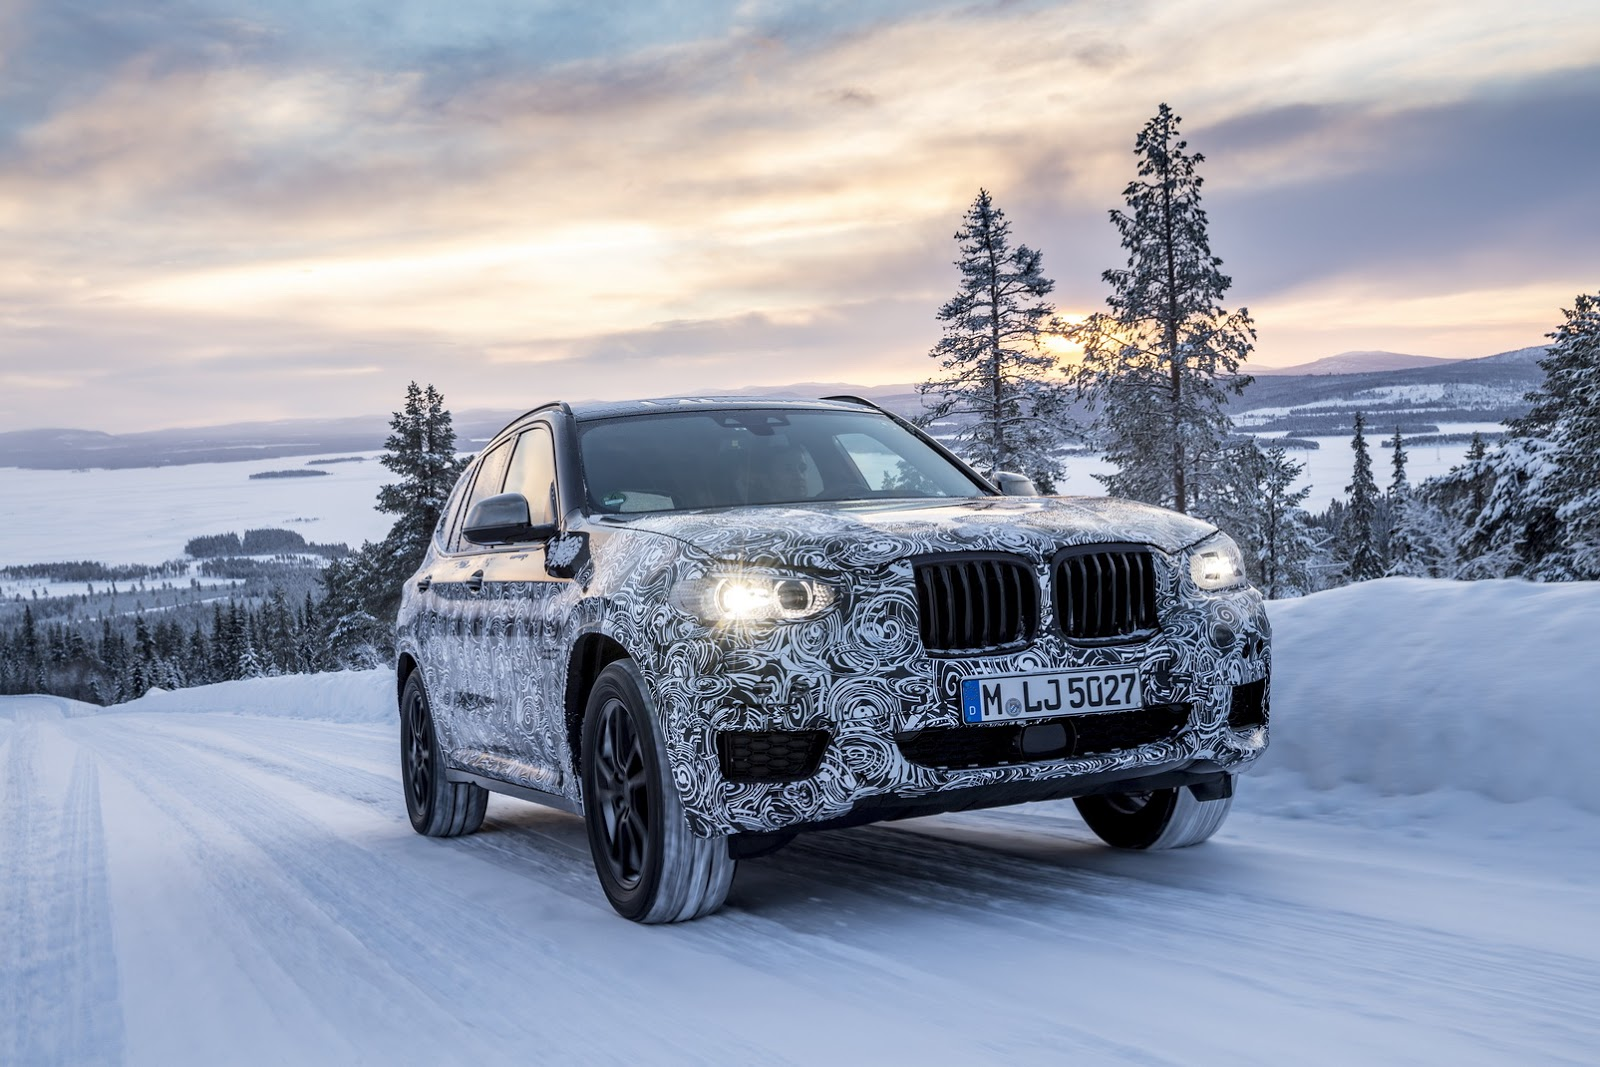 Official_Spy_Photos_BMW_X3_09